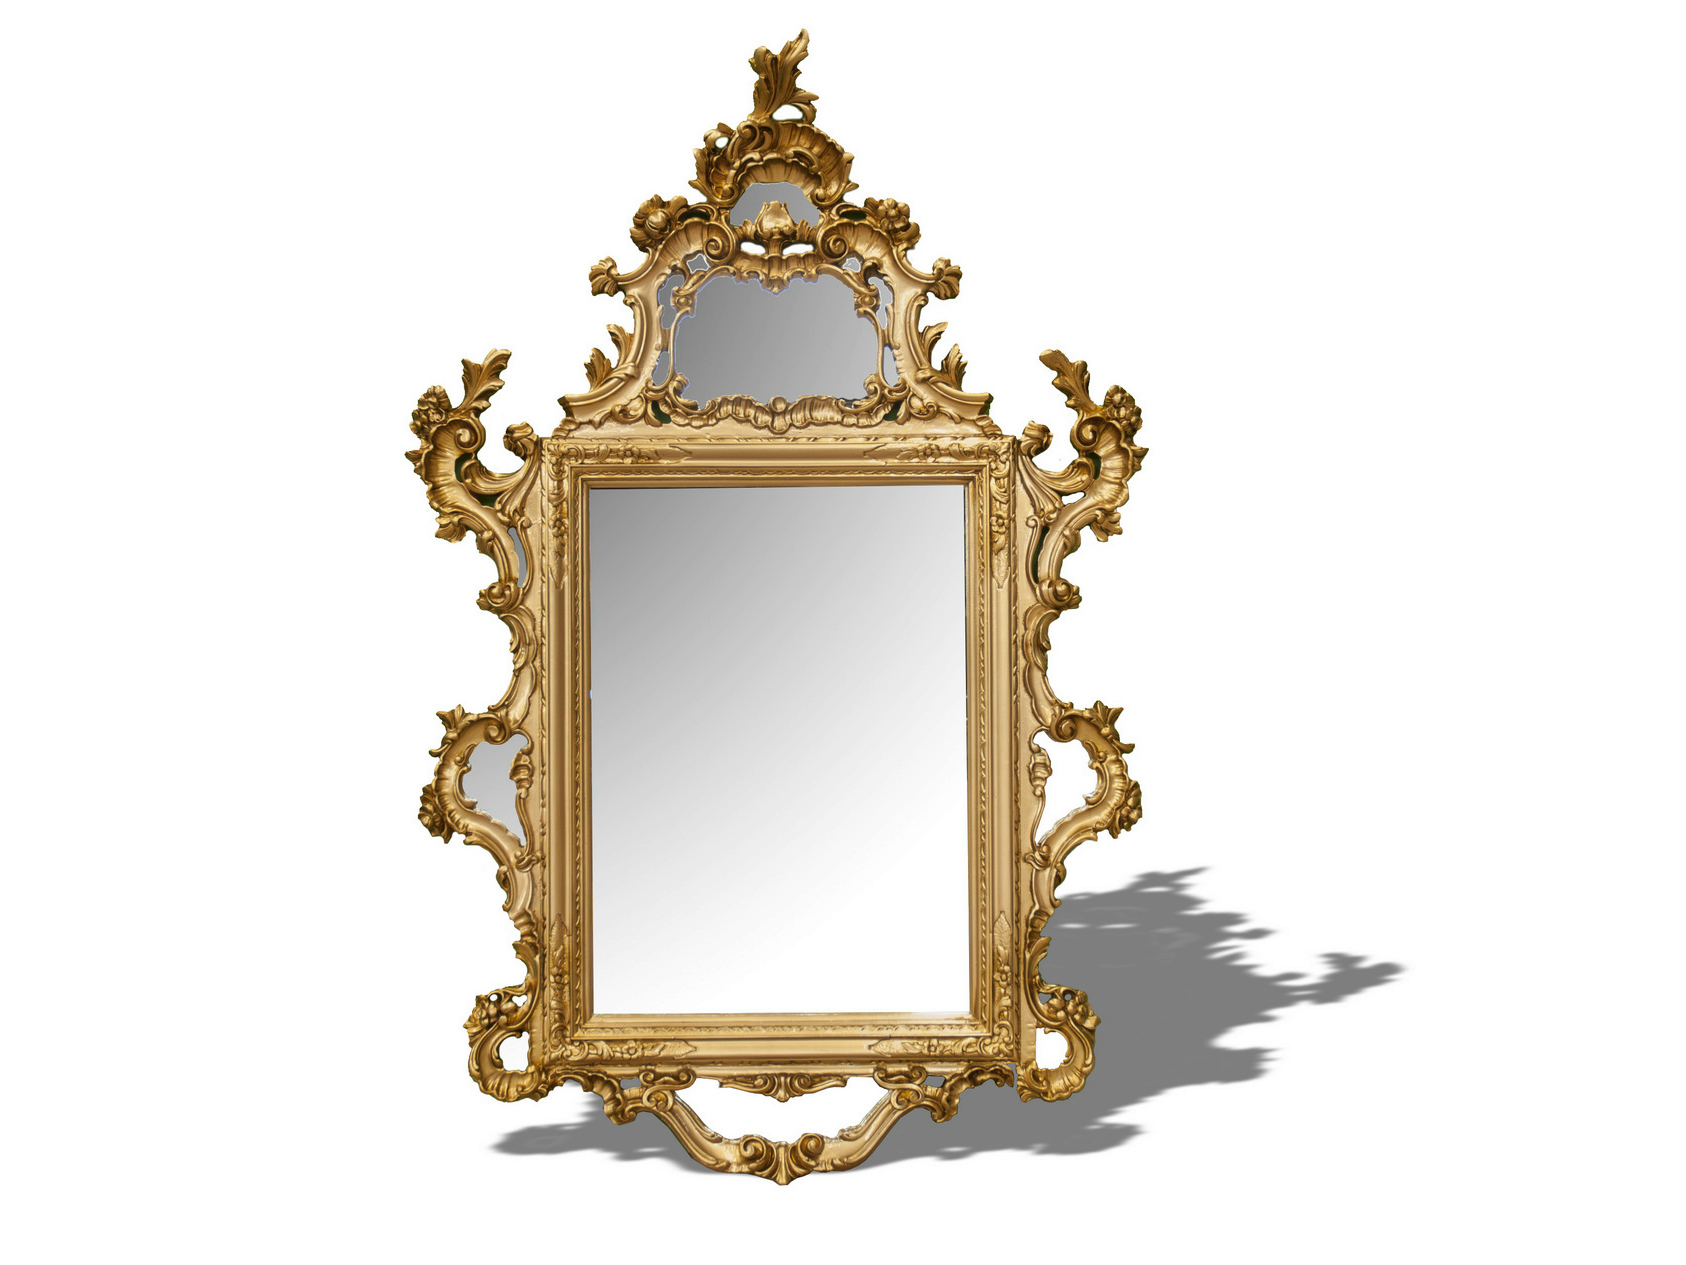 Polart classic style mirror by polart for Classic mirror